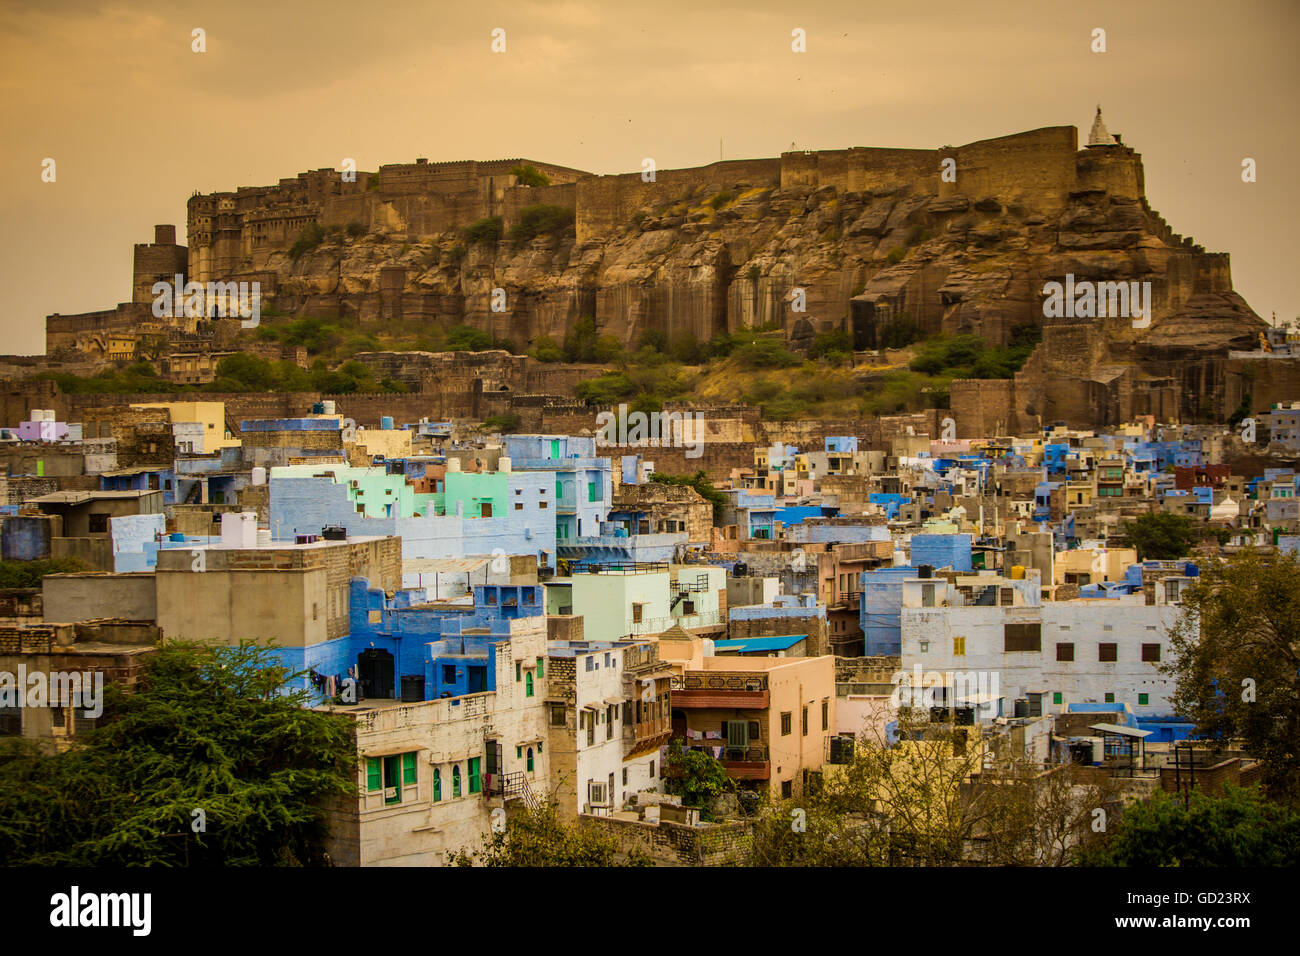 Mehrangarh Fort towering over the blue rooftops in Jodhpur, the Blue City, Rajasthan, India, Asia - Stock Image